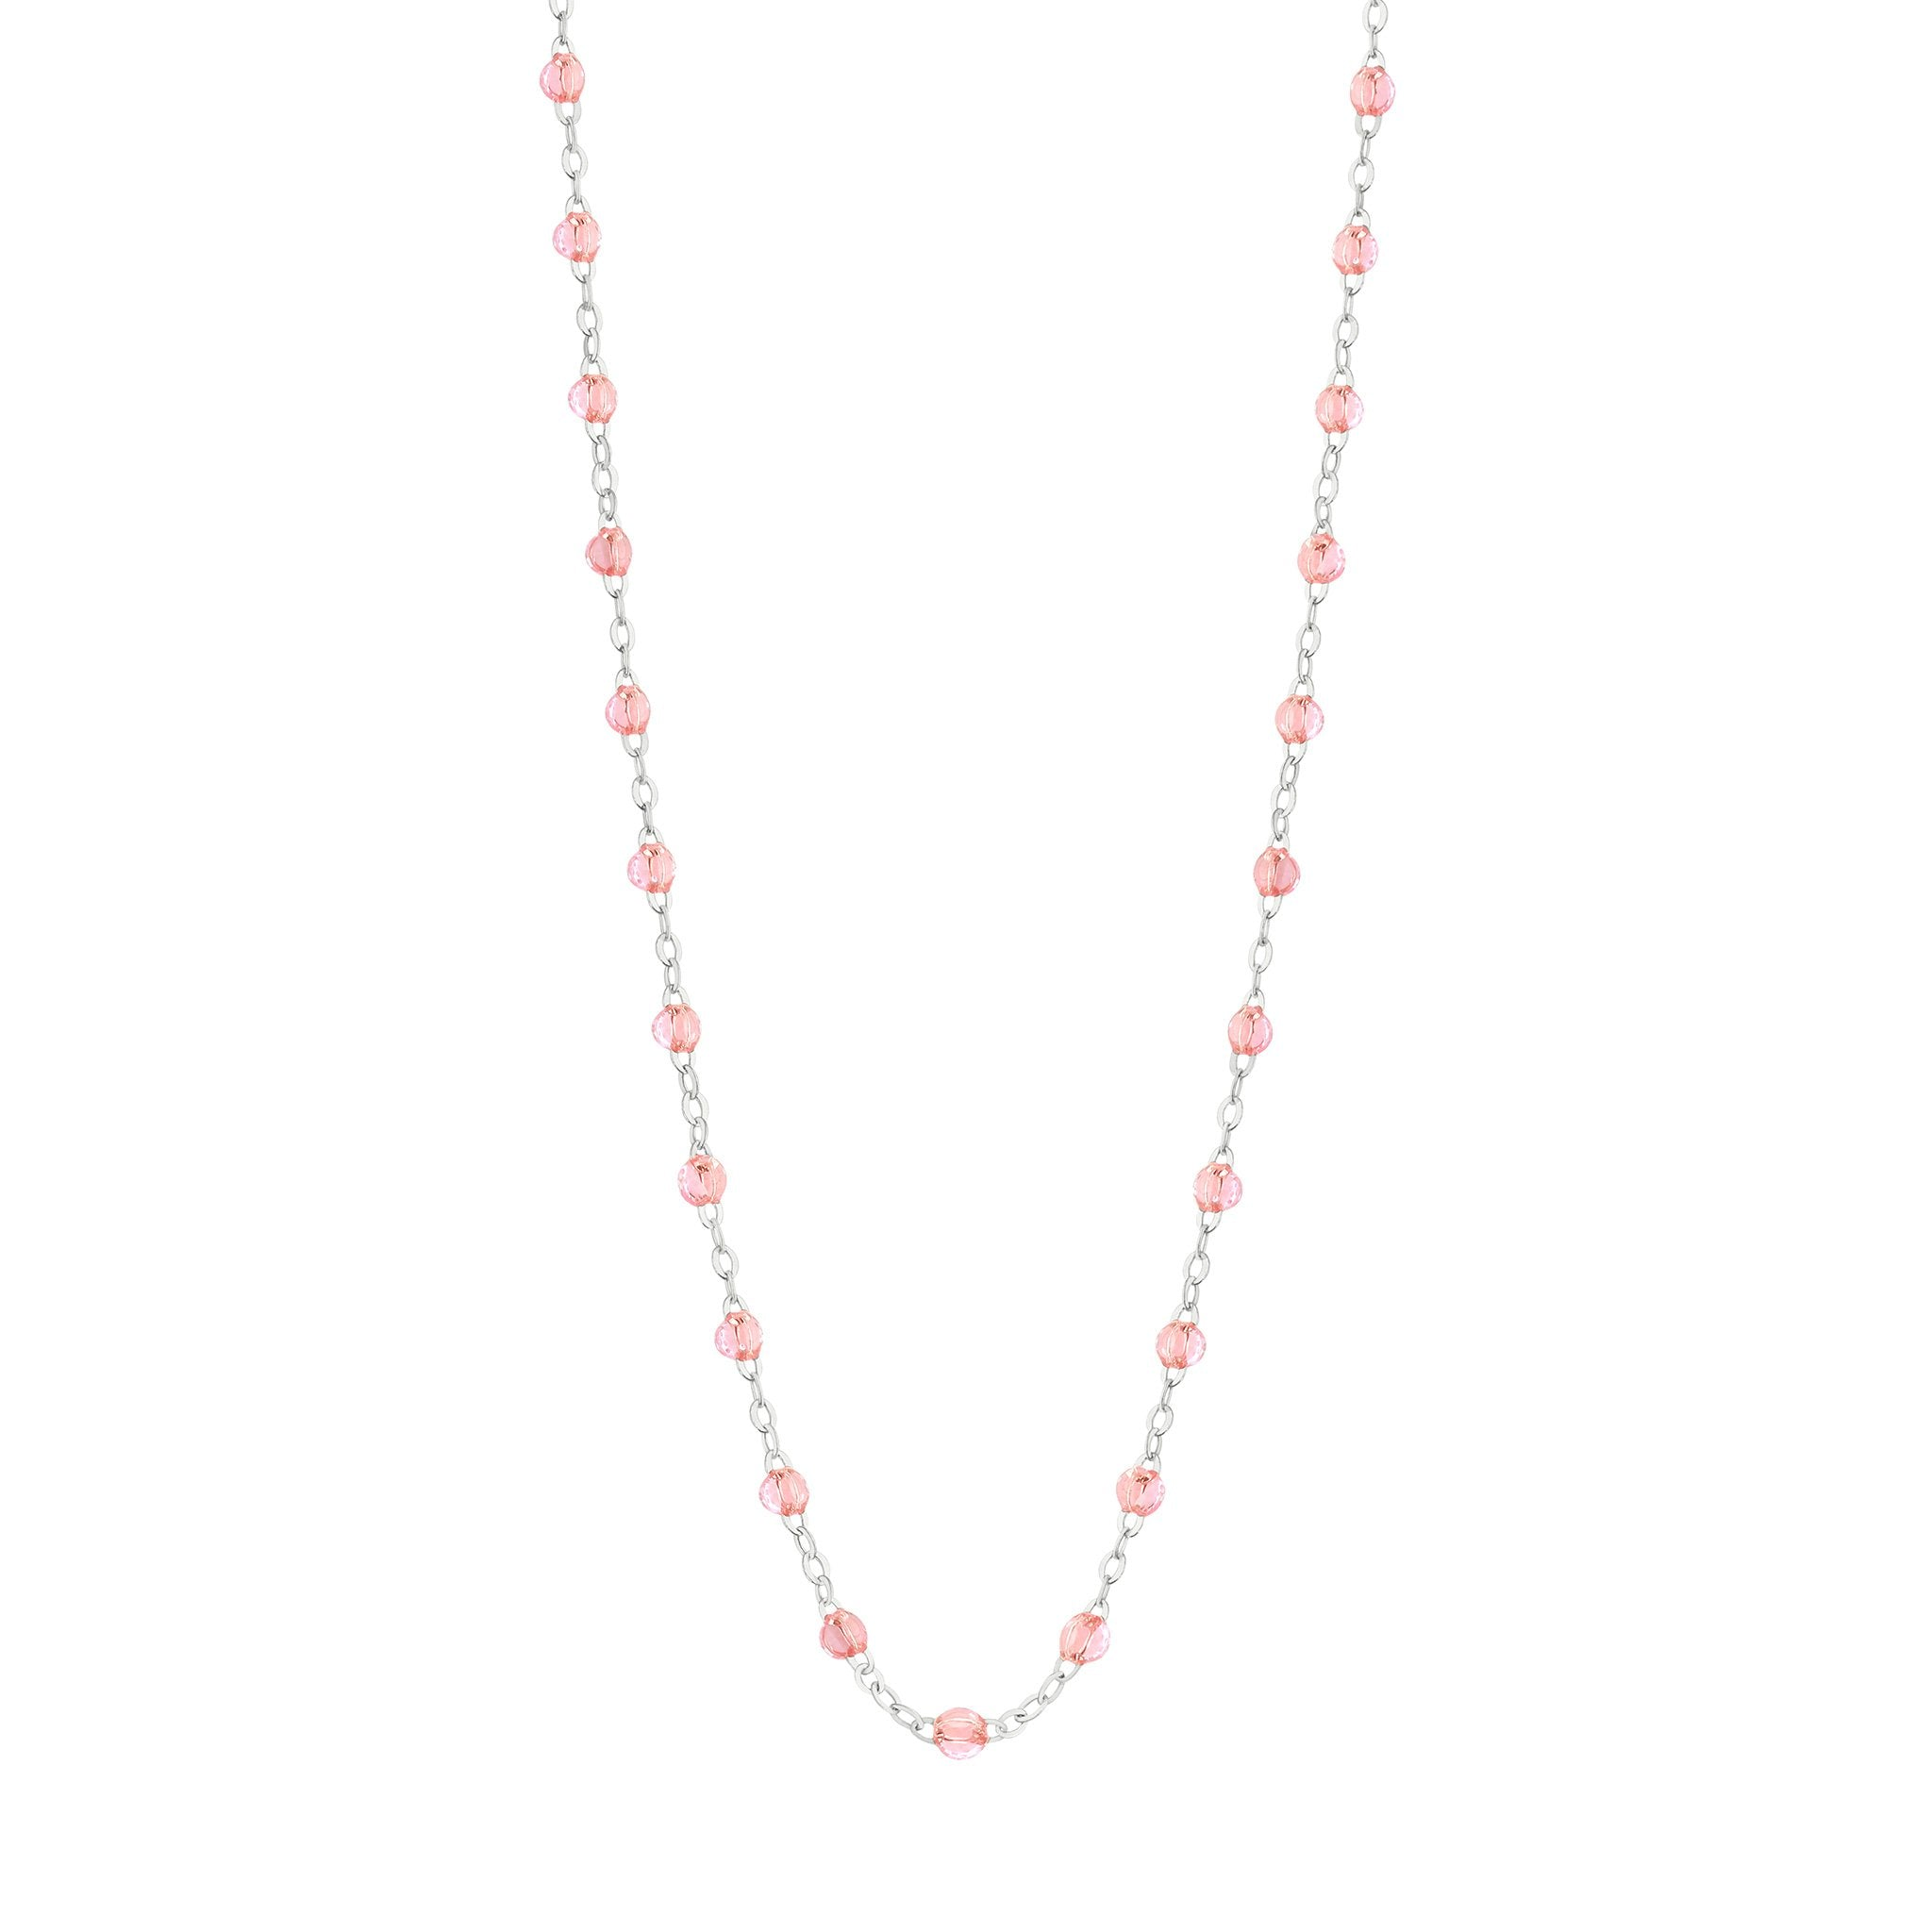 Gigi Clozeau - Classic Gigi Rosée necklace, White Gold, 16.5""